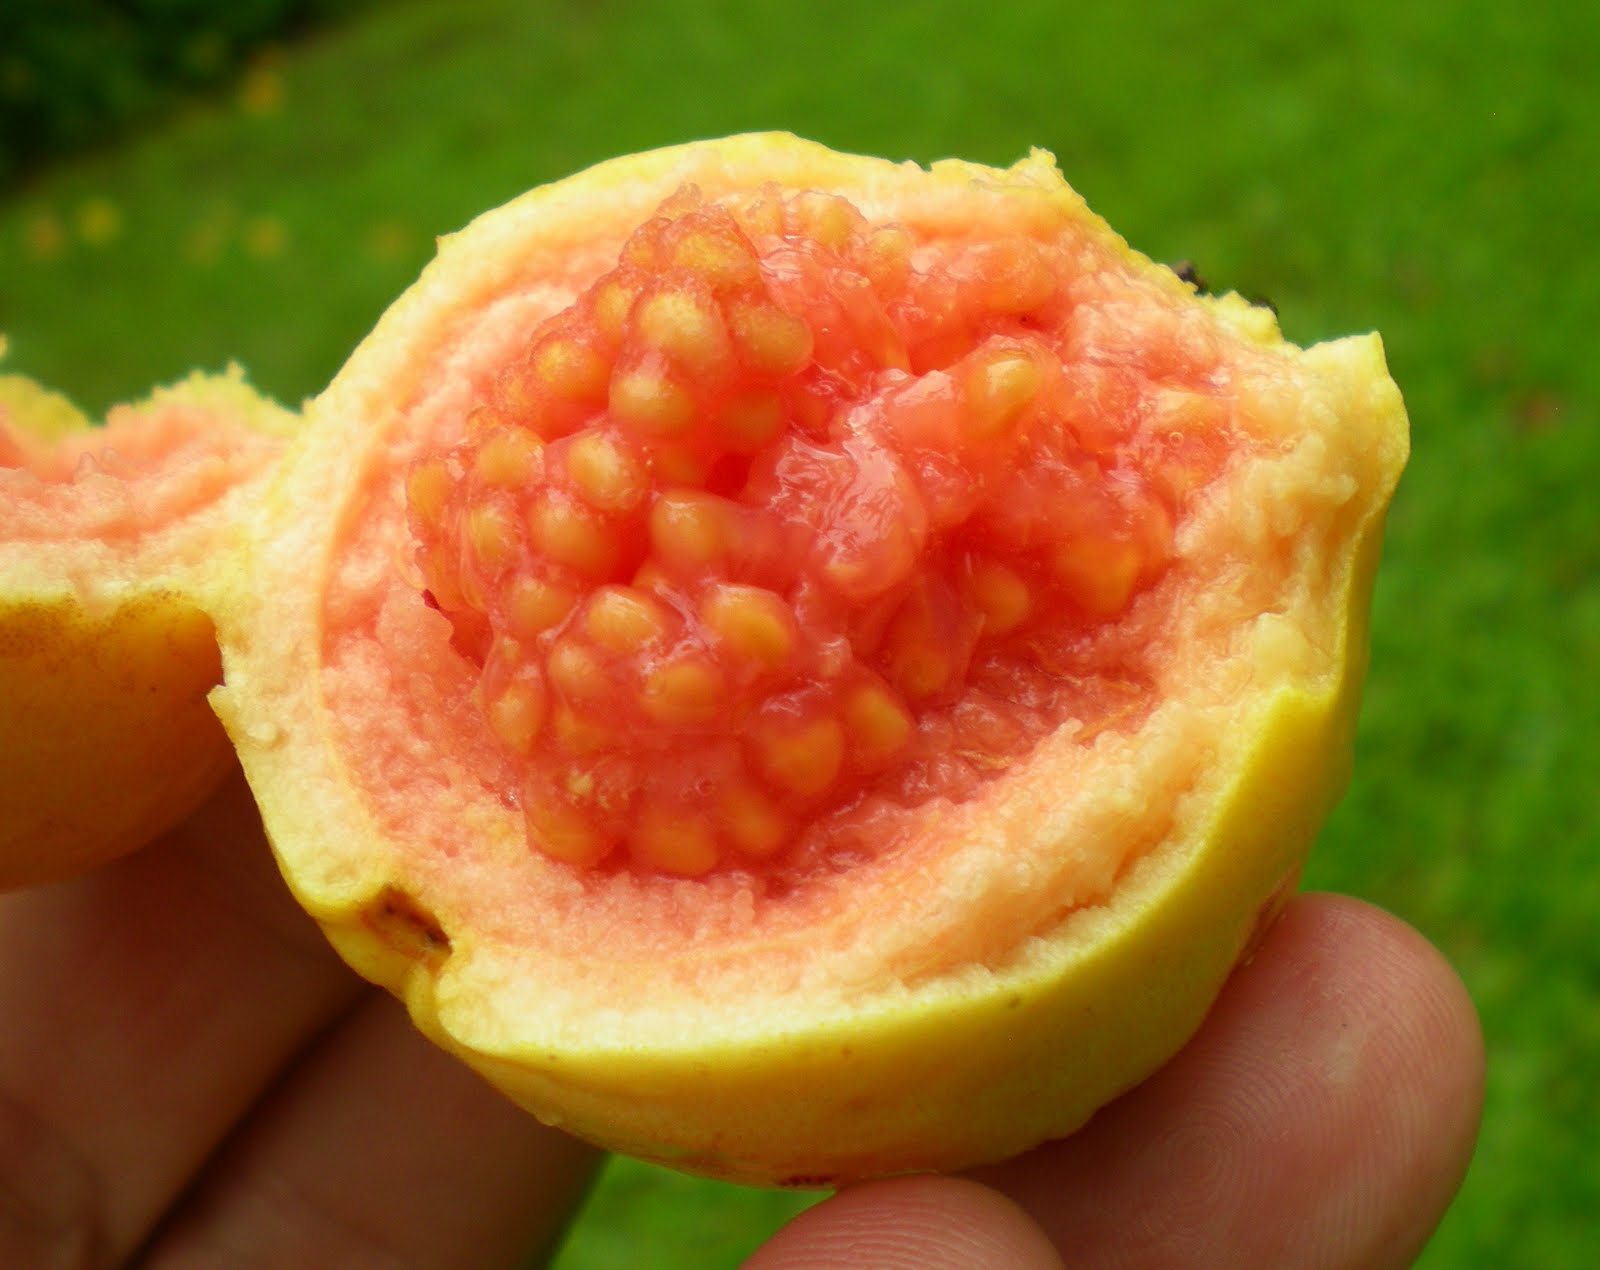 Greg's World On A Plate: Island Style, Tropical Fruits